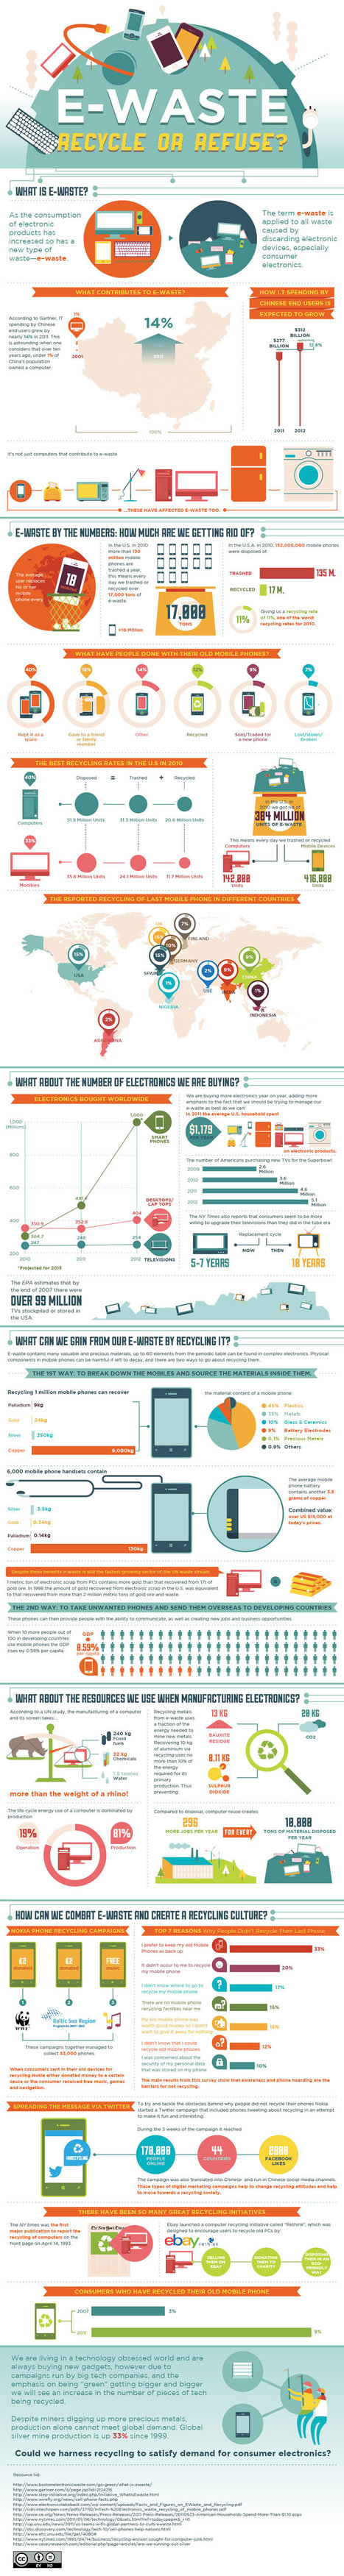 E-Waste by the Numbers: Infographic | Trends in Sustainability | Scoop.it